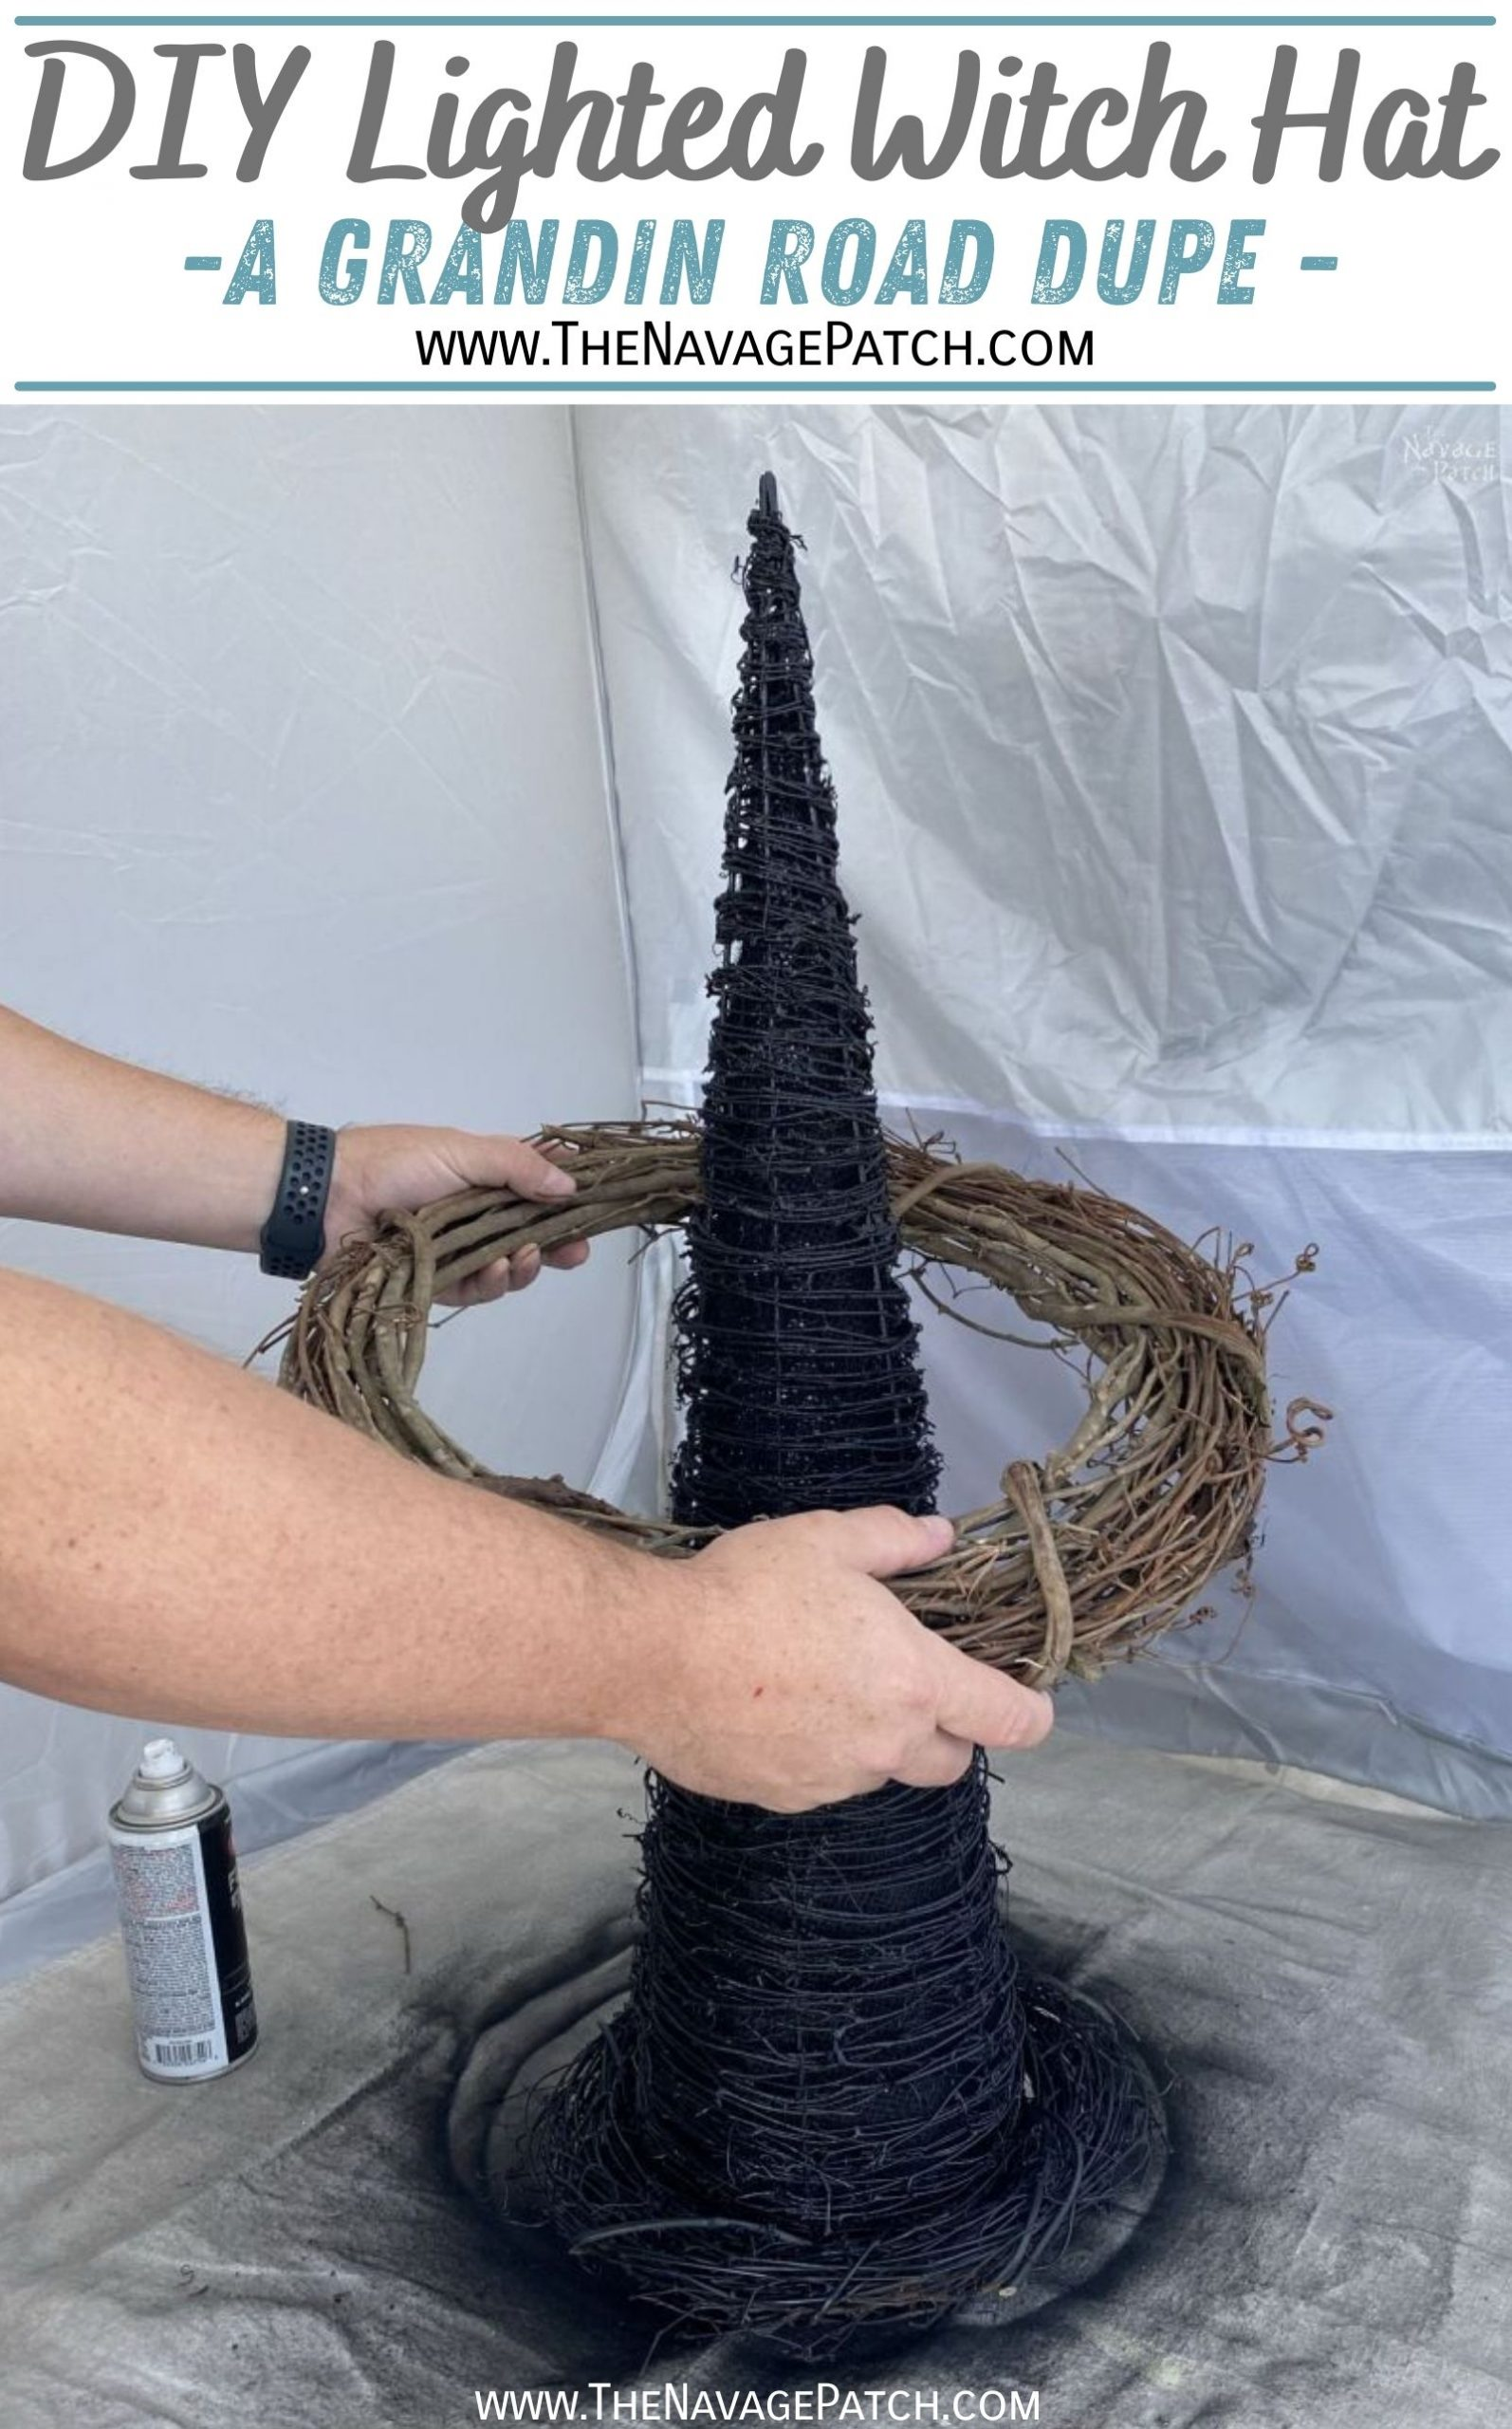 DIY Lighted Witch Hat (Grandin Road Inspired) - TheNavagePatch.com